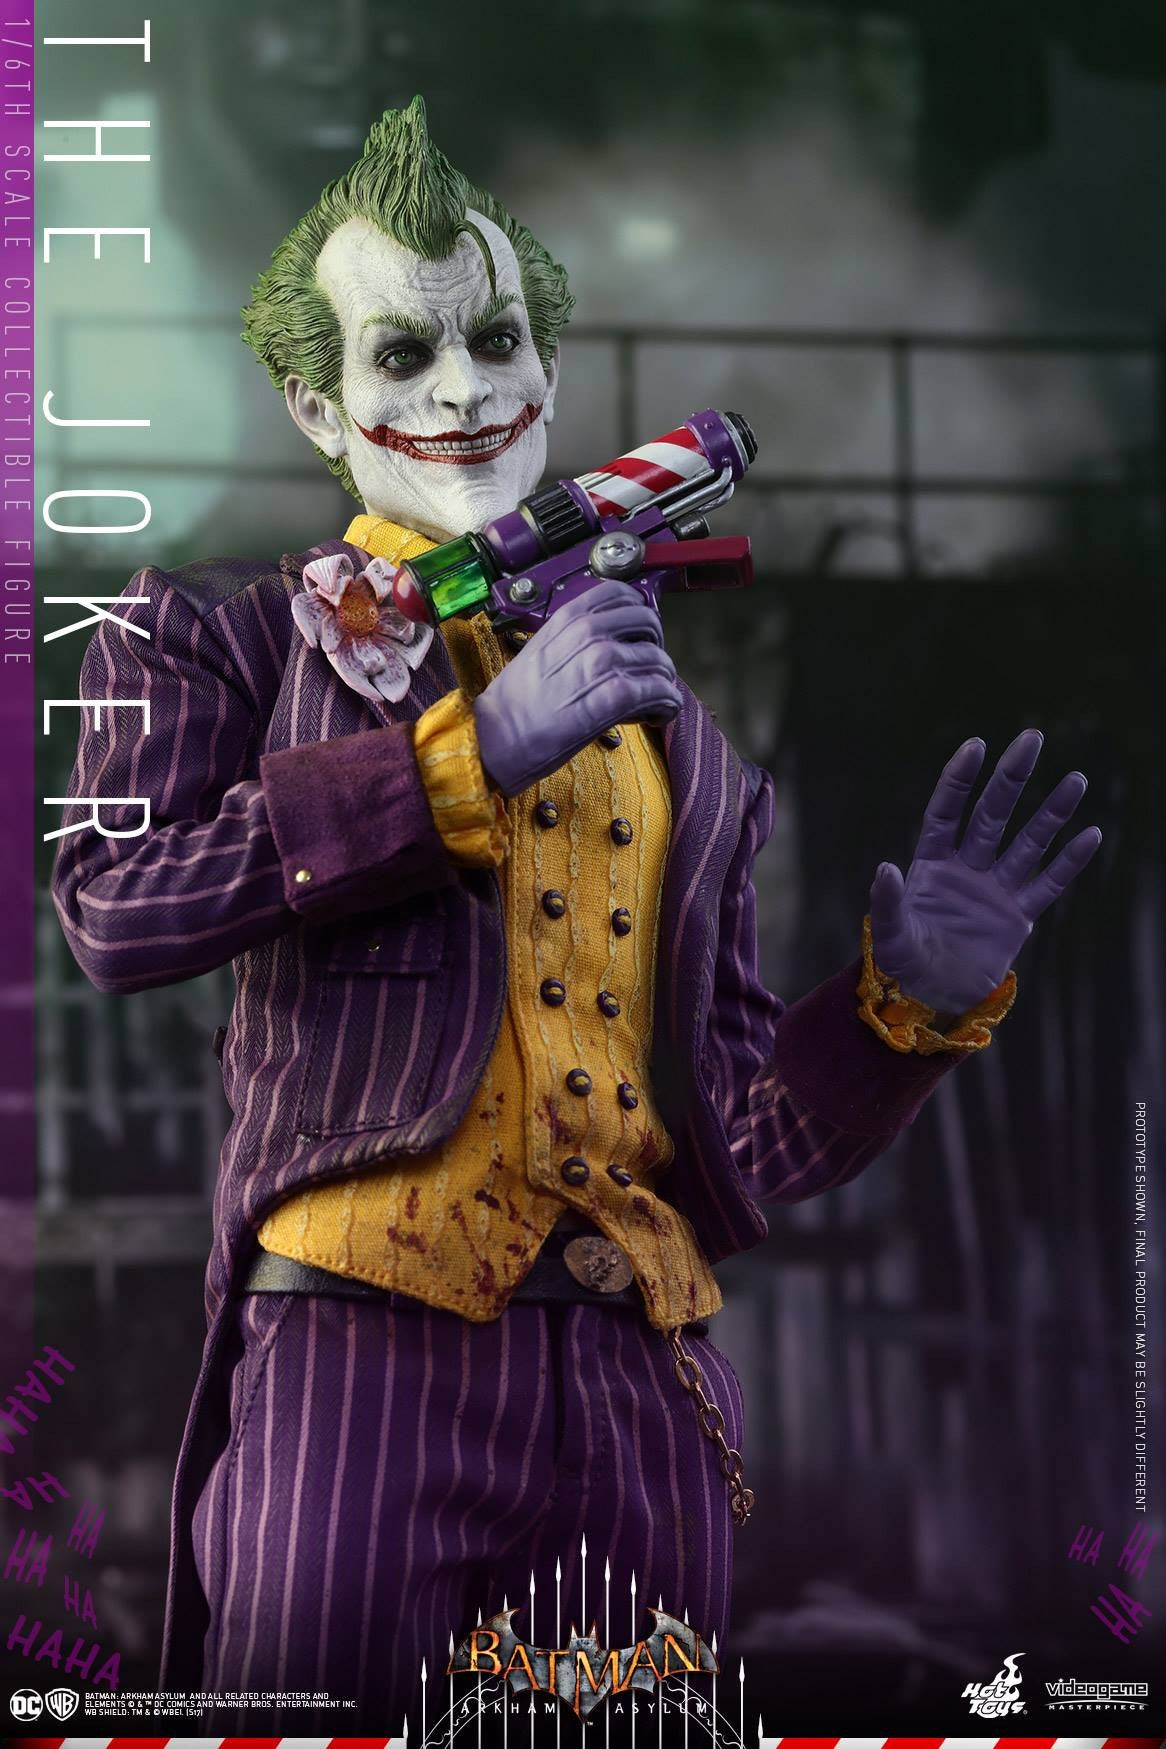 Hot Toys - VGM27 - Batman: Arkham Asylum - The Joker - Marvelous Toys - 7